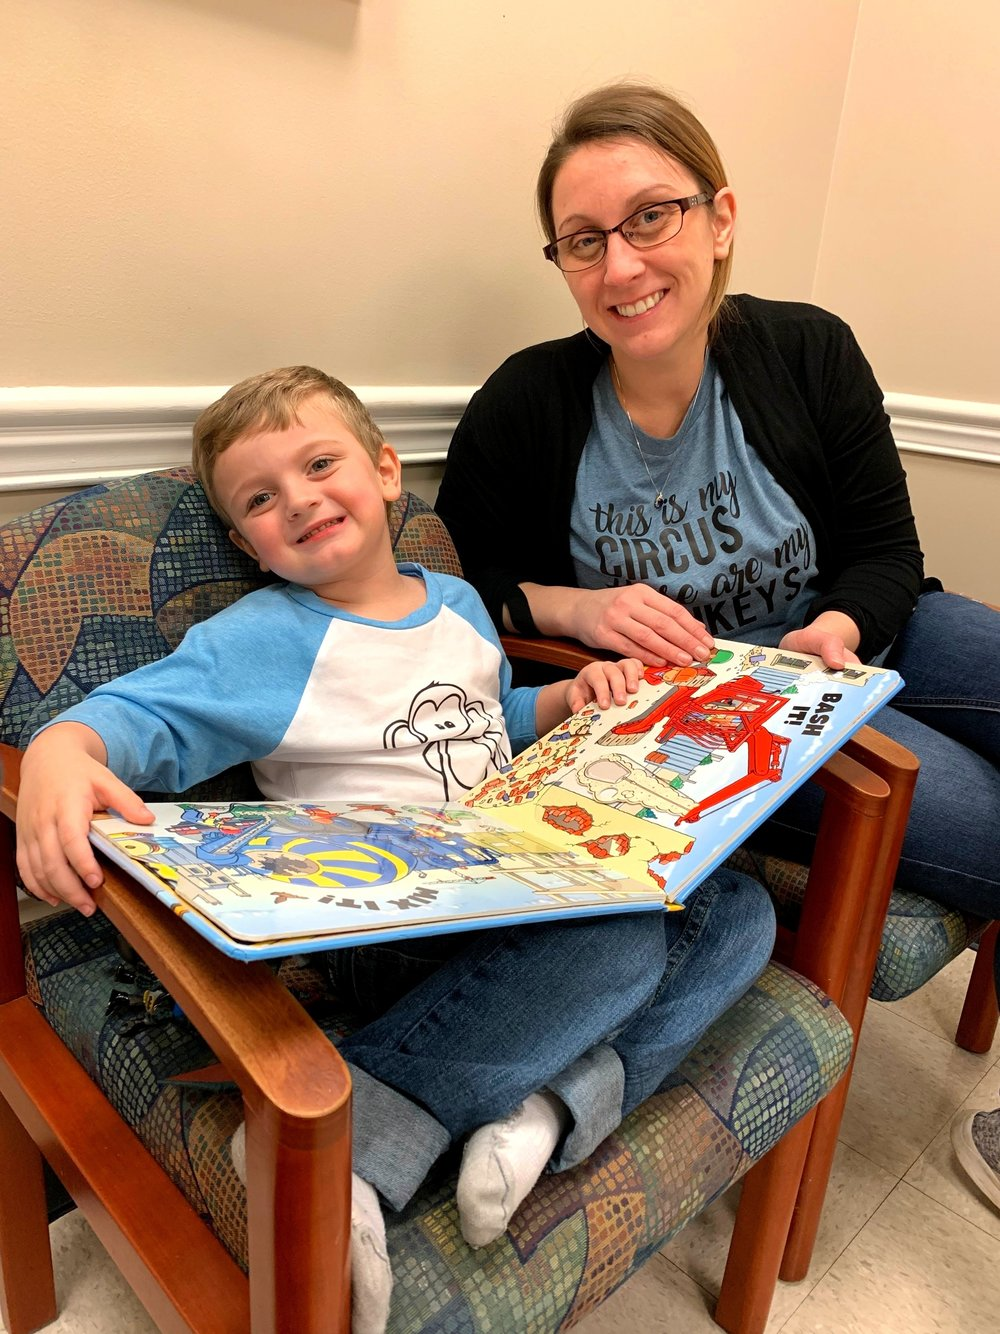 Sam and his mom reading a book during his office visit.